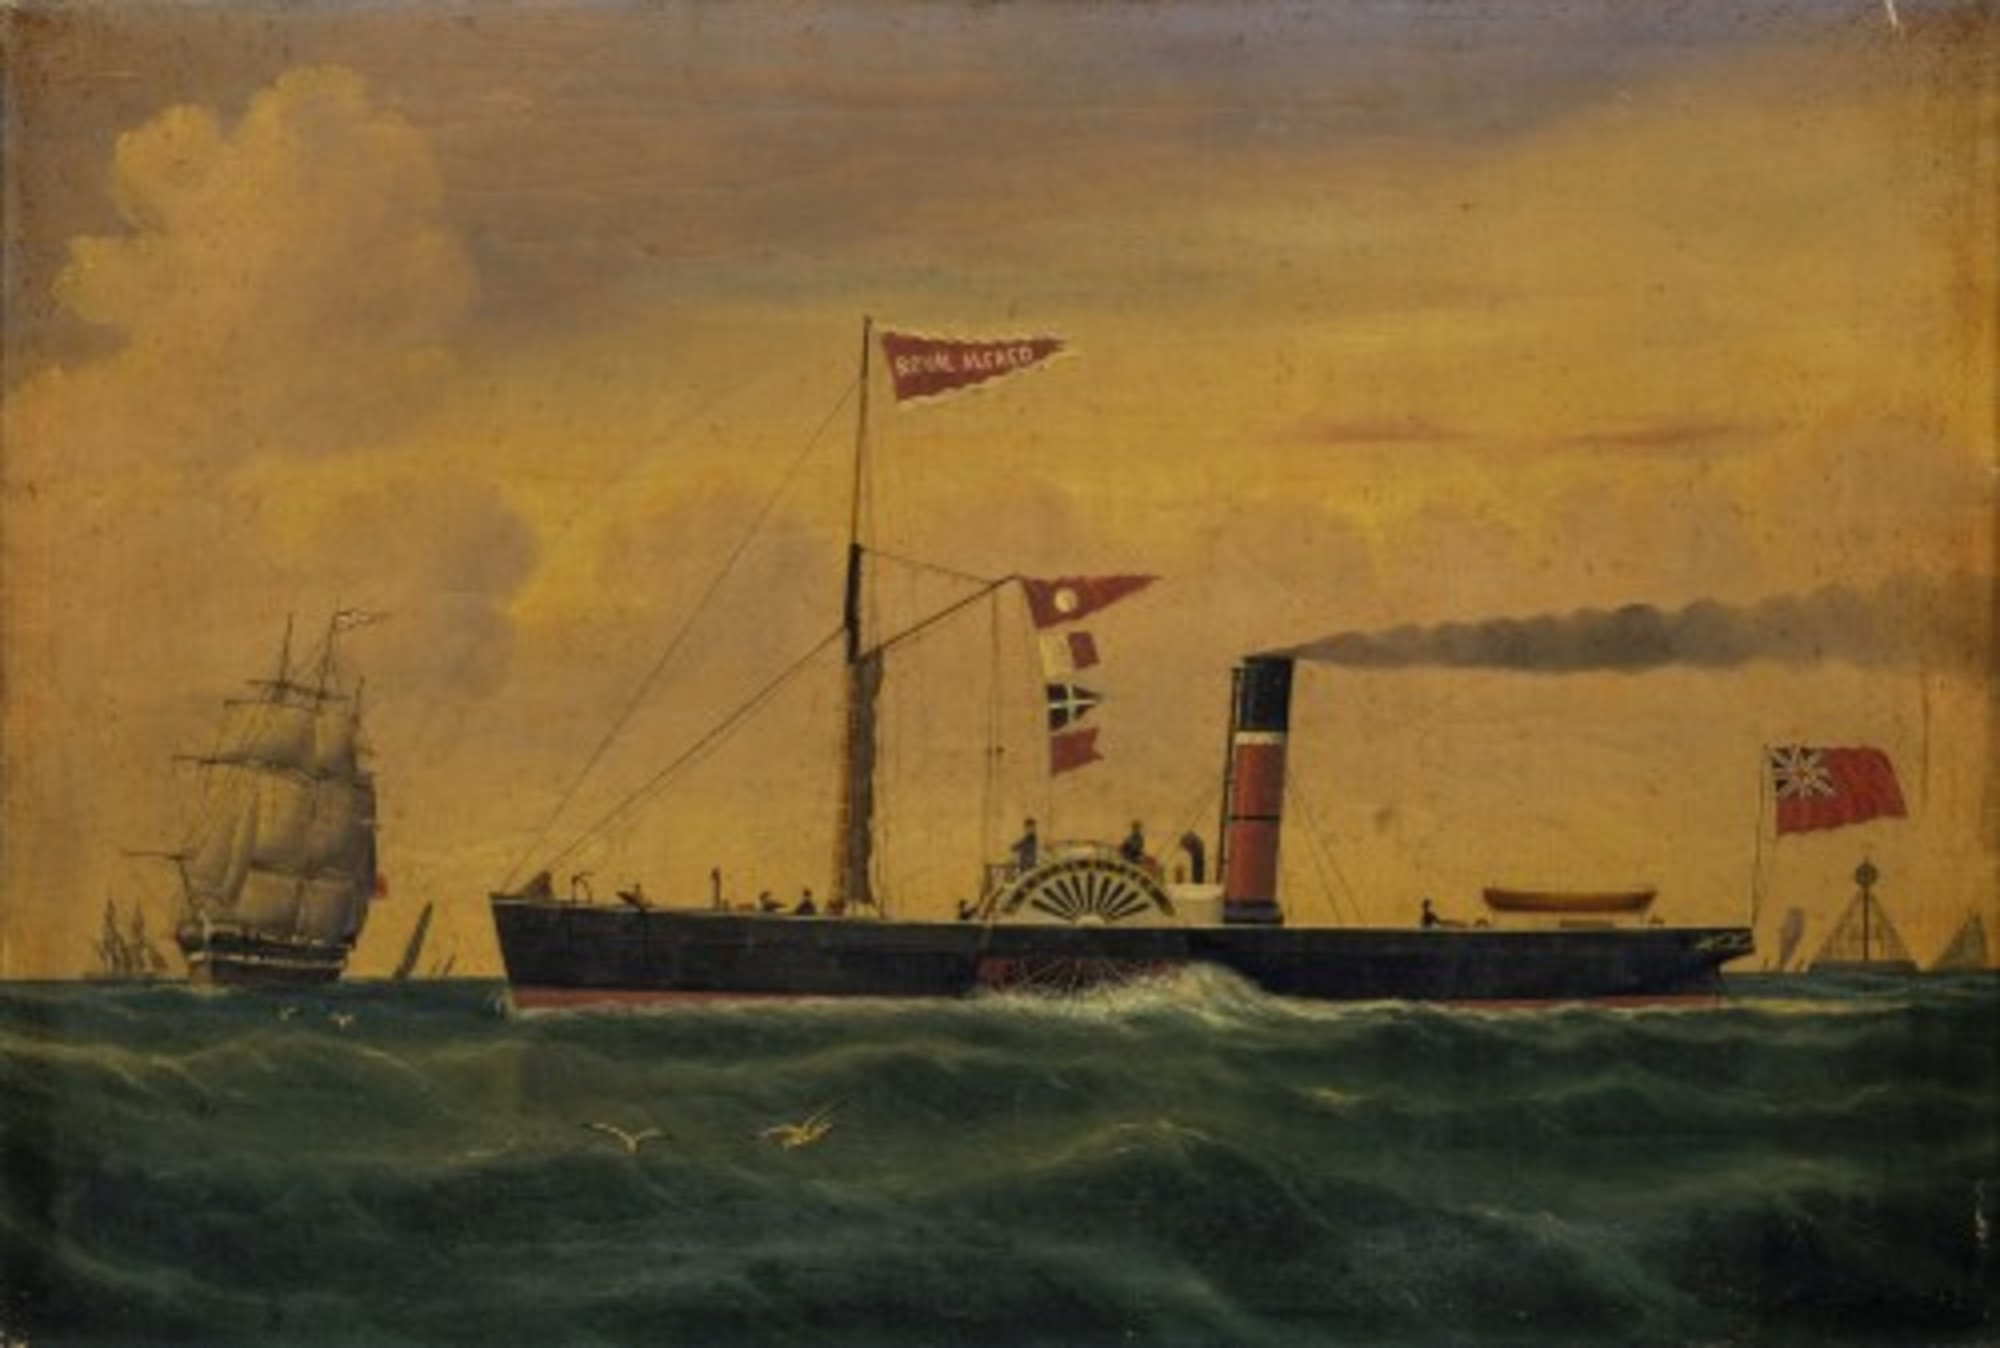 The-steam-tug-Royal-Alfred-with-the-ship-Anne-Royden-RMG-BHC3597.jpg